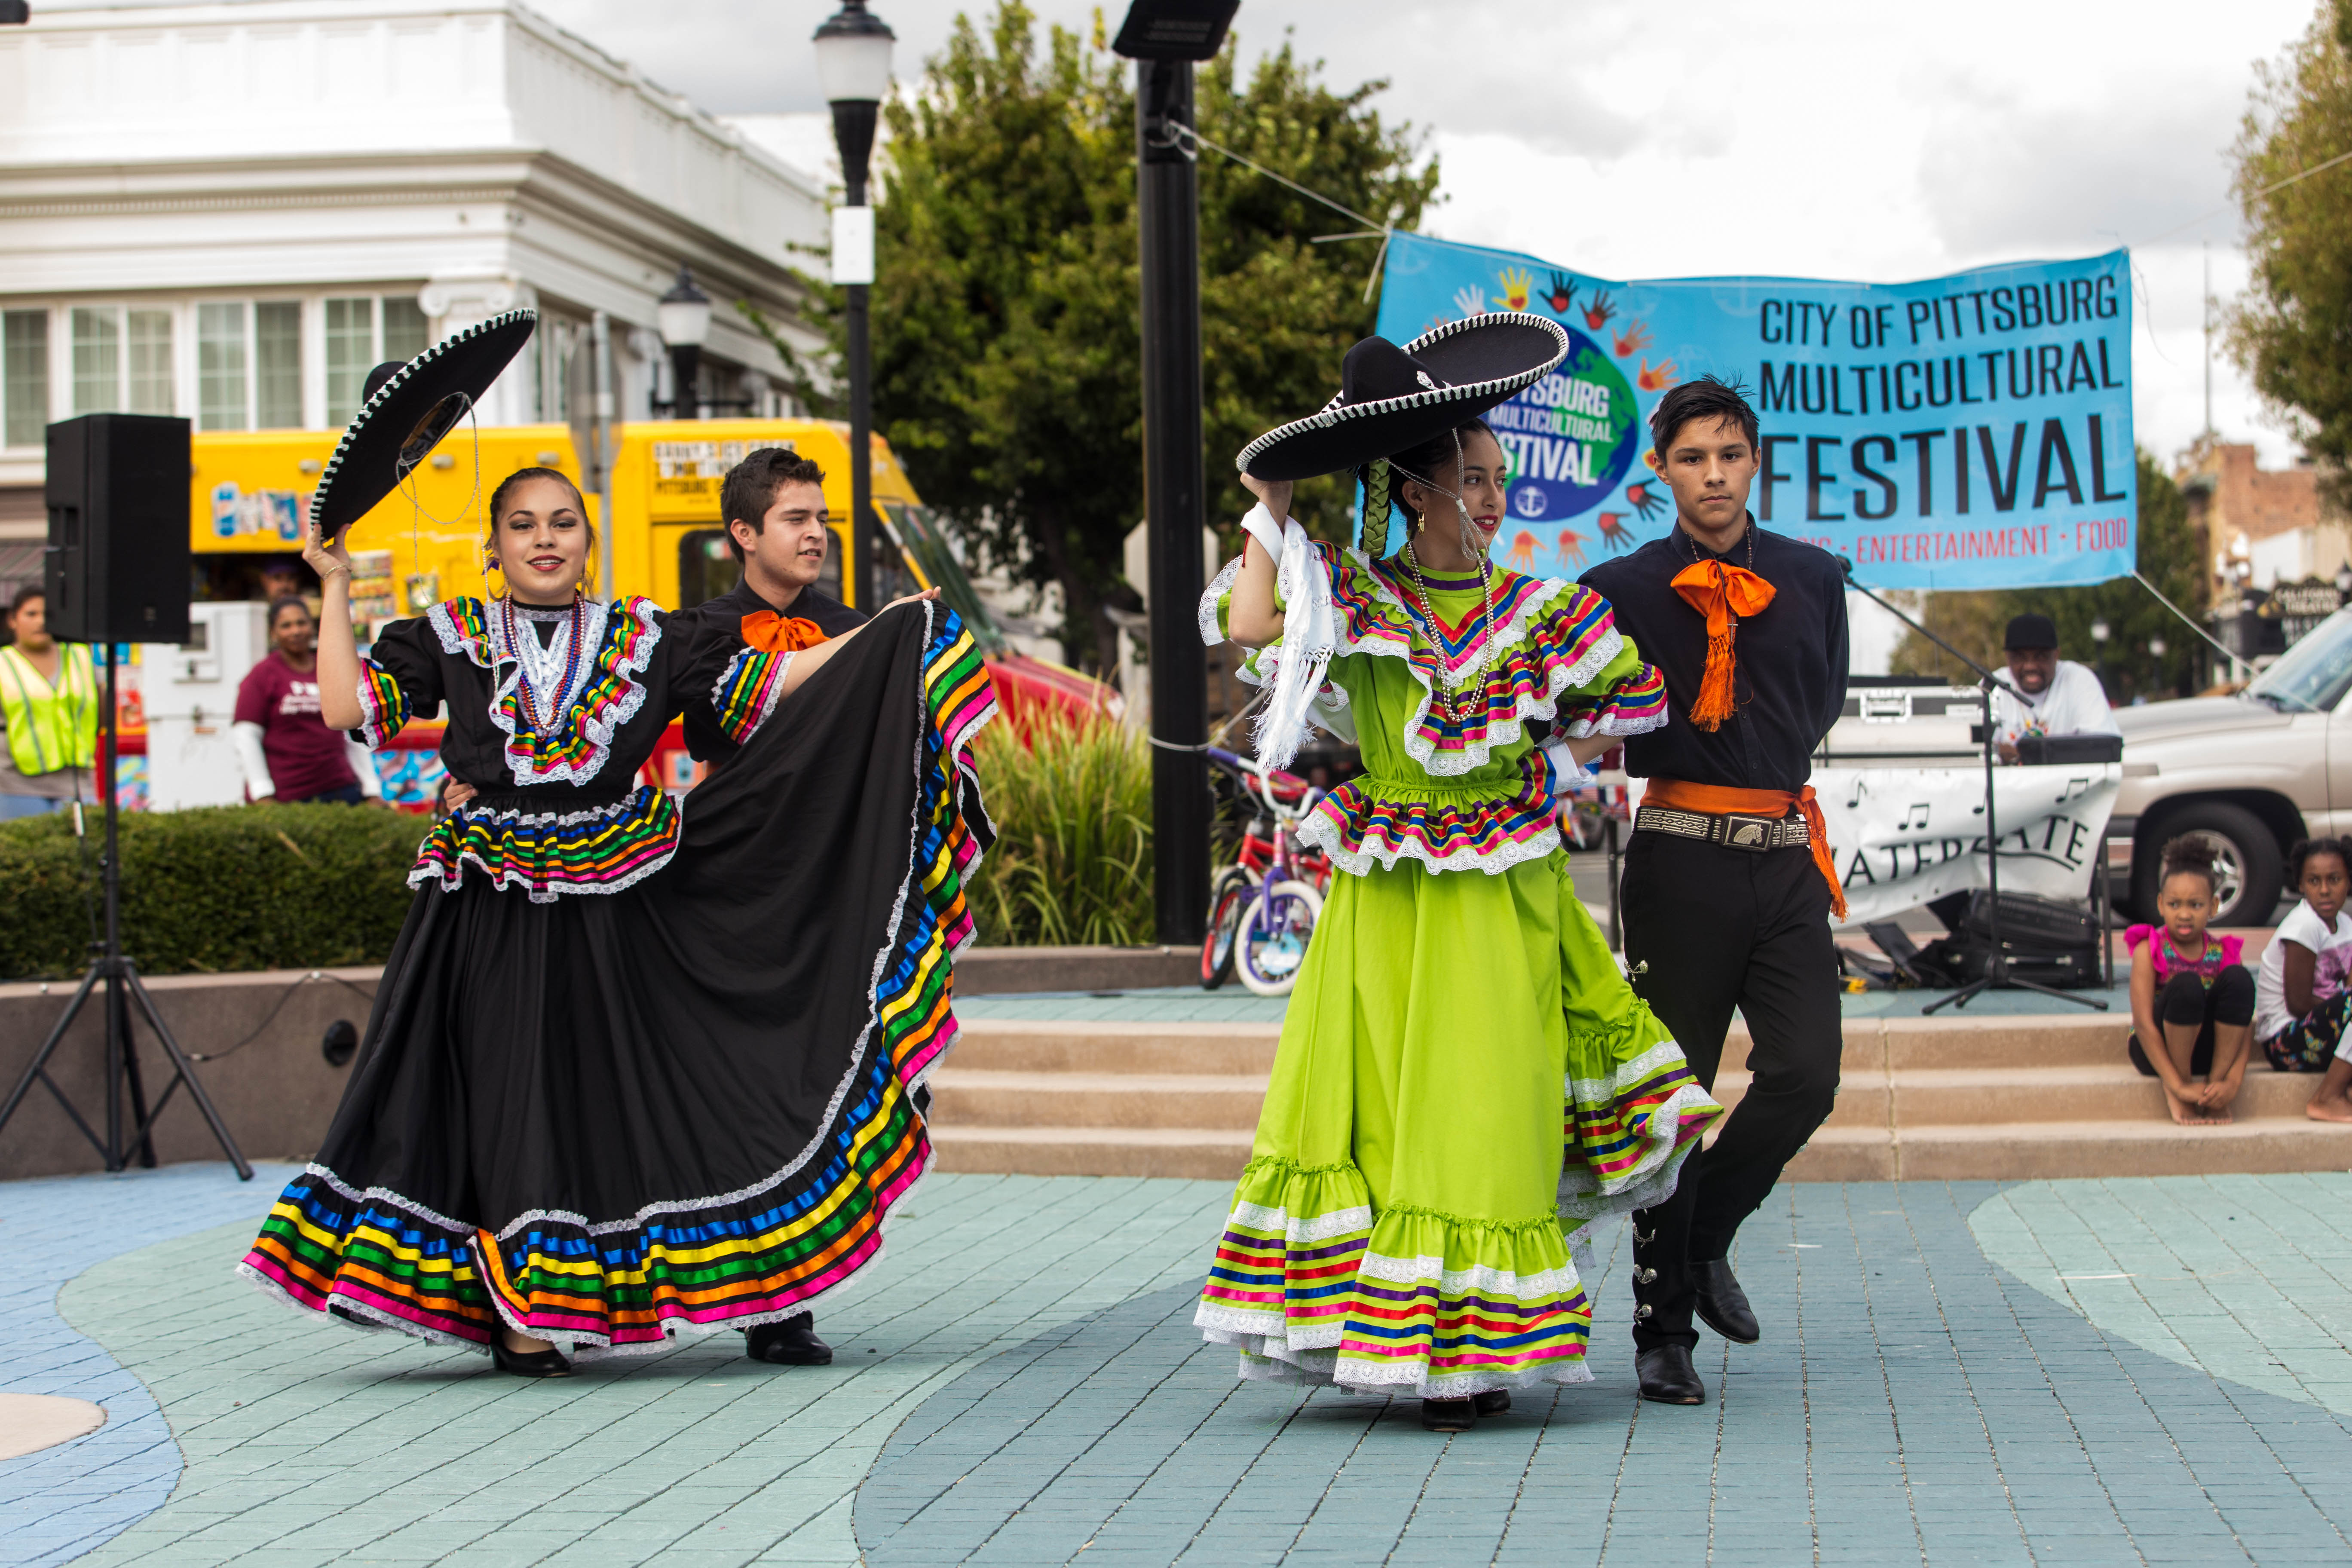 CITY_PITTSBURG_MULTICULTURAL_OCTOBER_2016 (643)